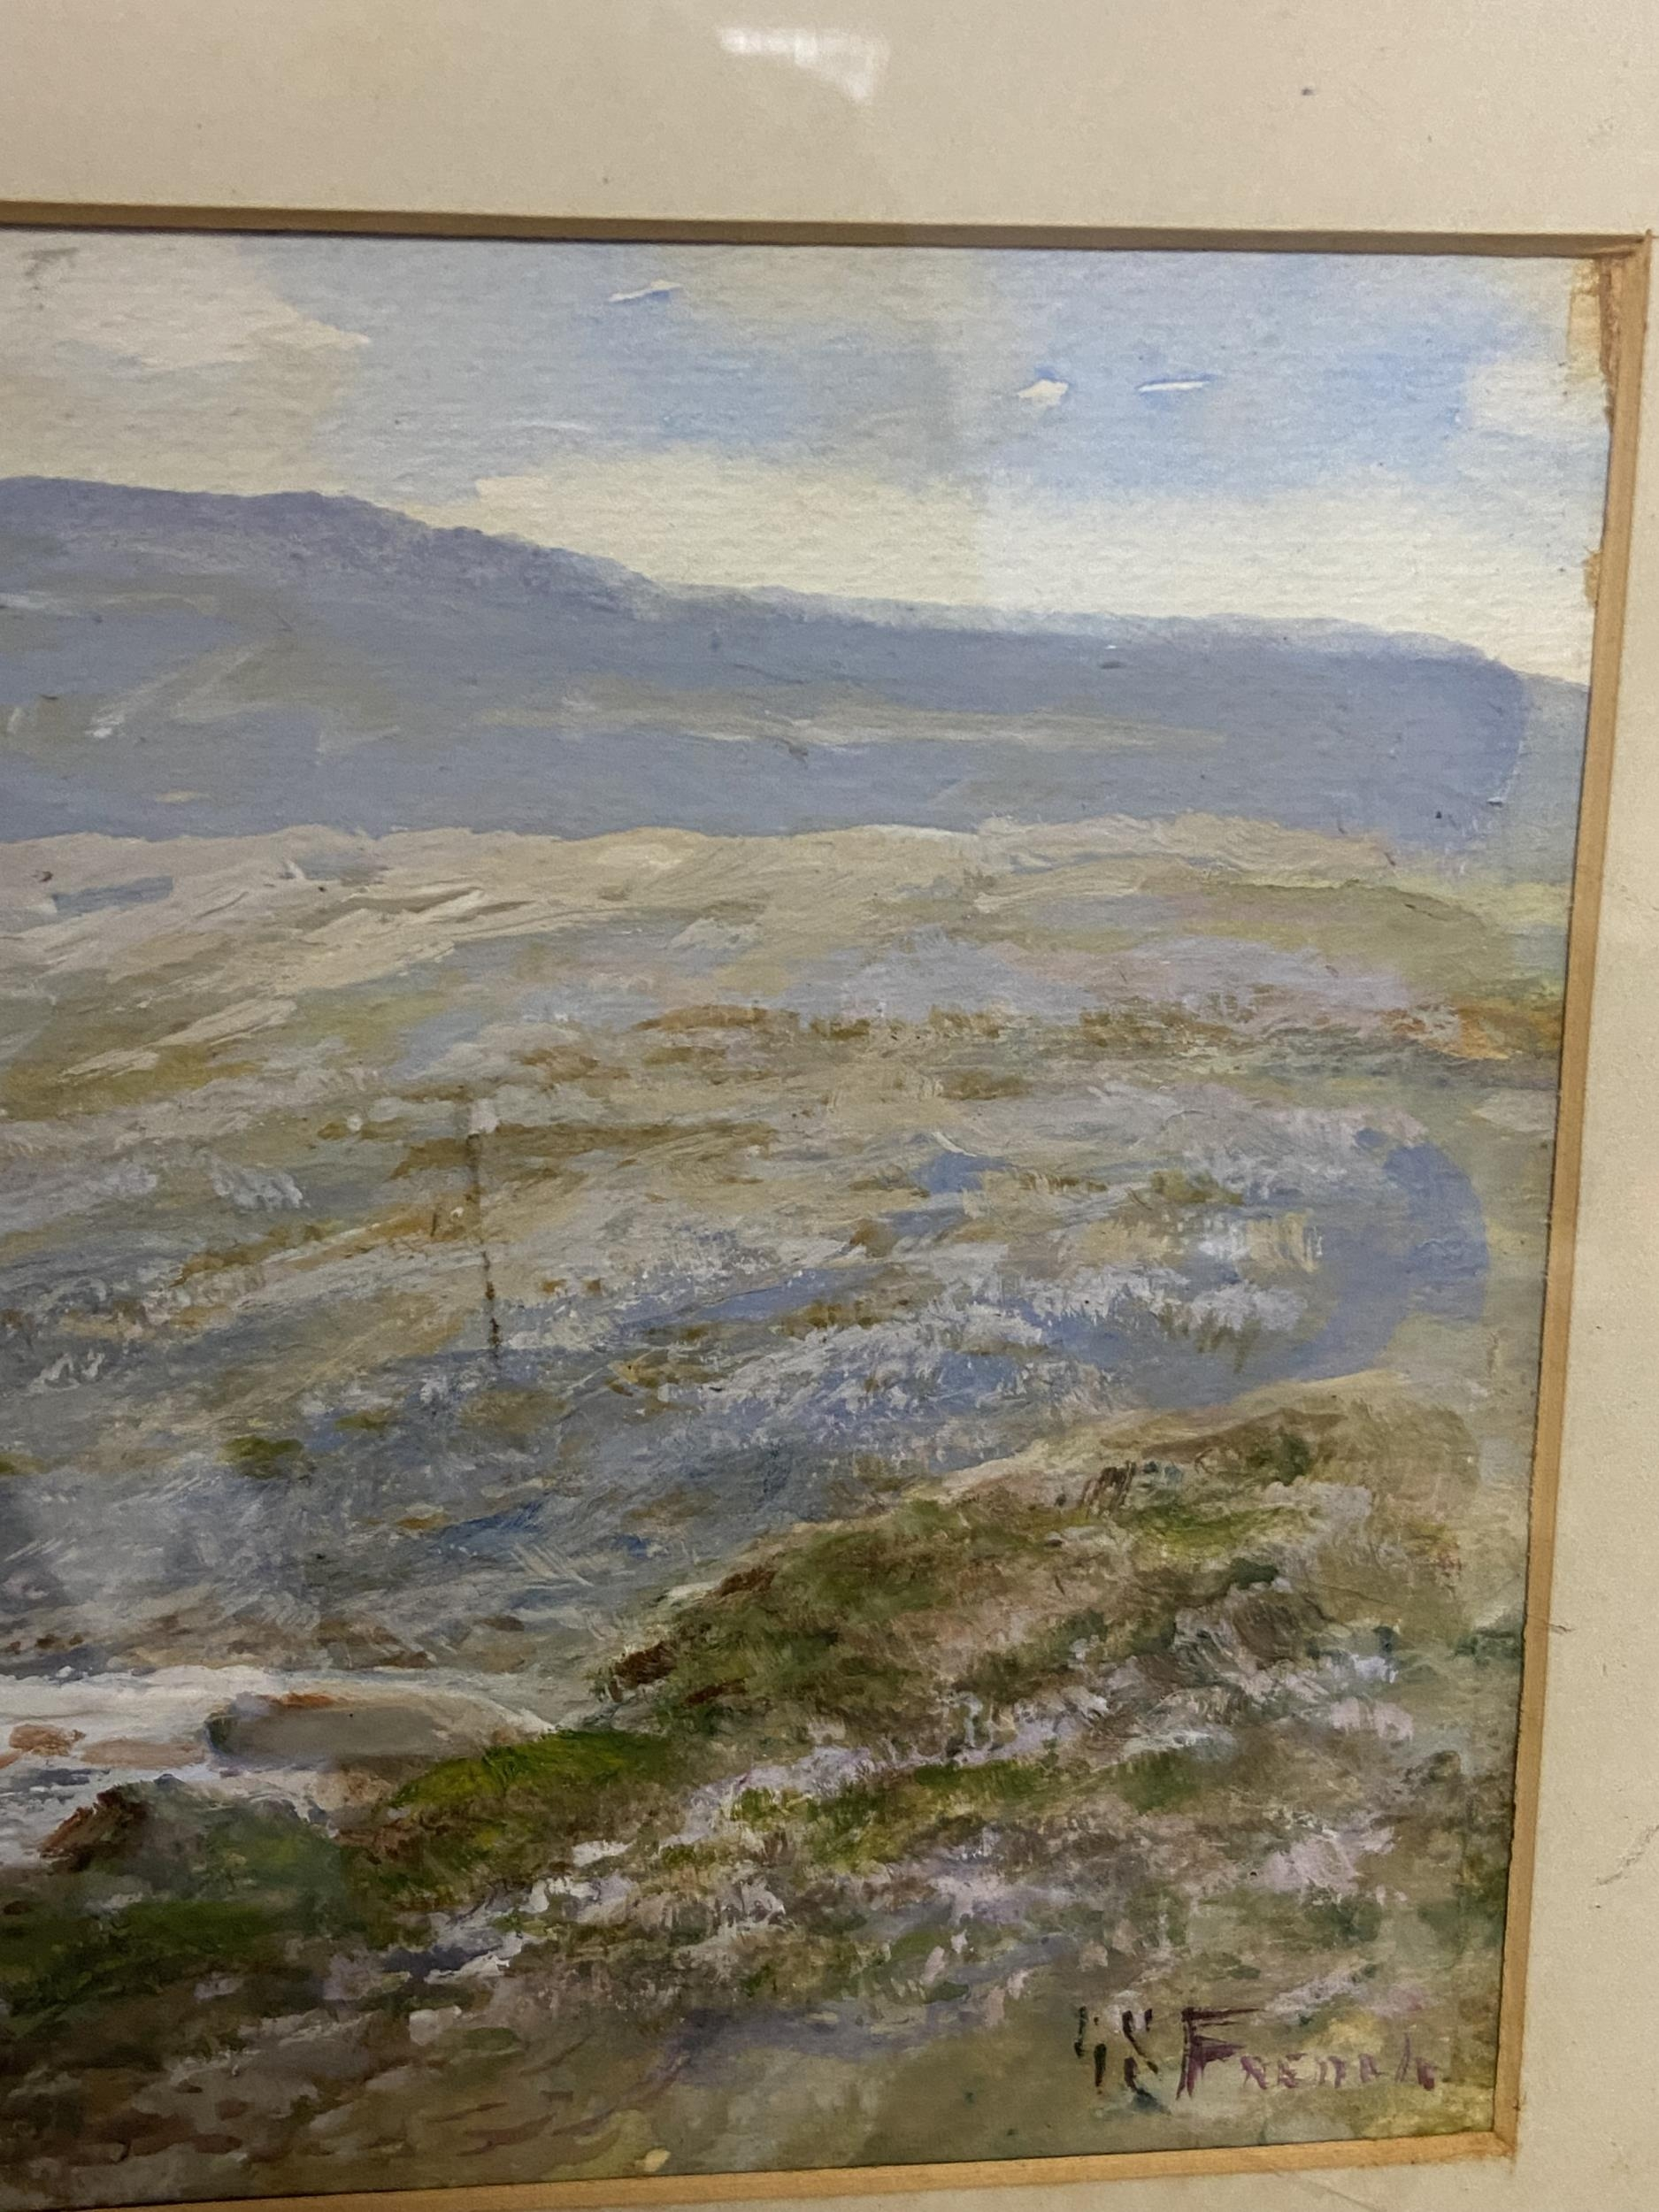 Antique original watercolour depicting sheep in a valley scene. Signed by the artist [Unreadable] [ - Image 5 of 6